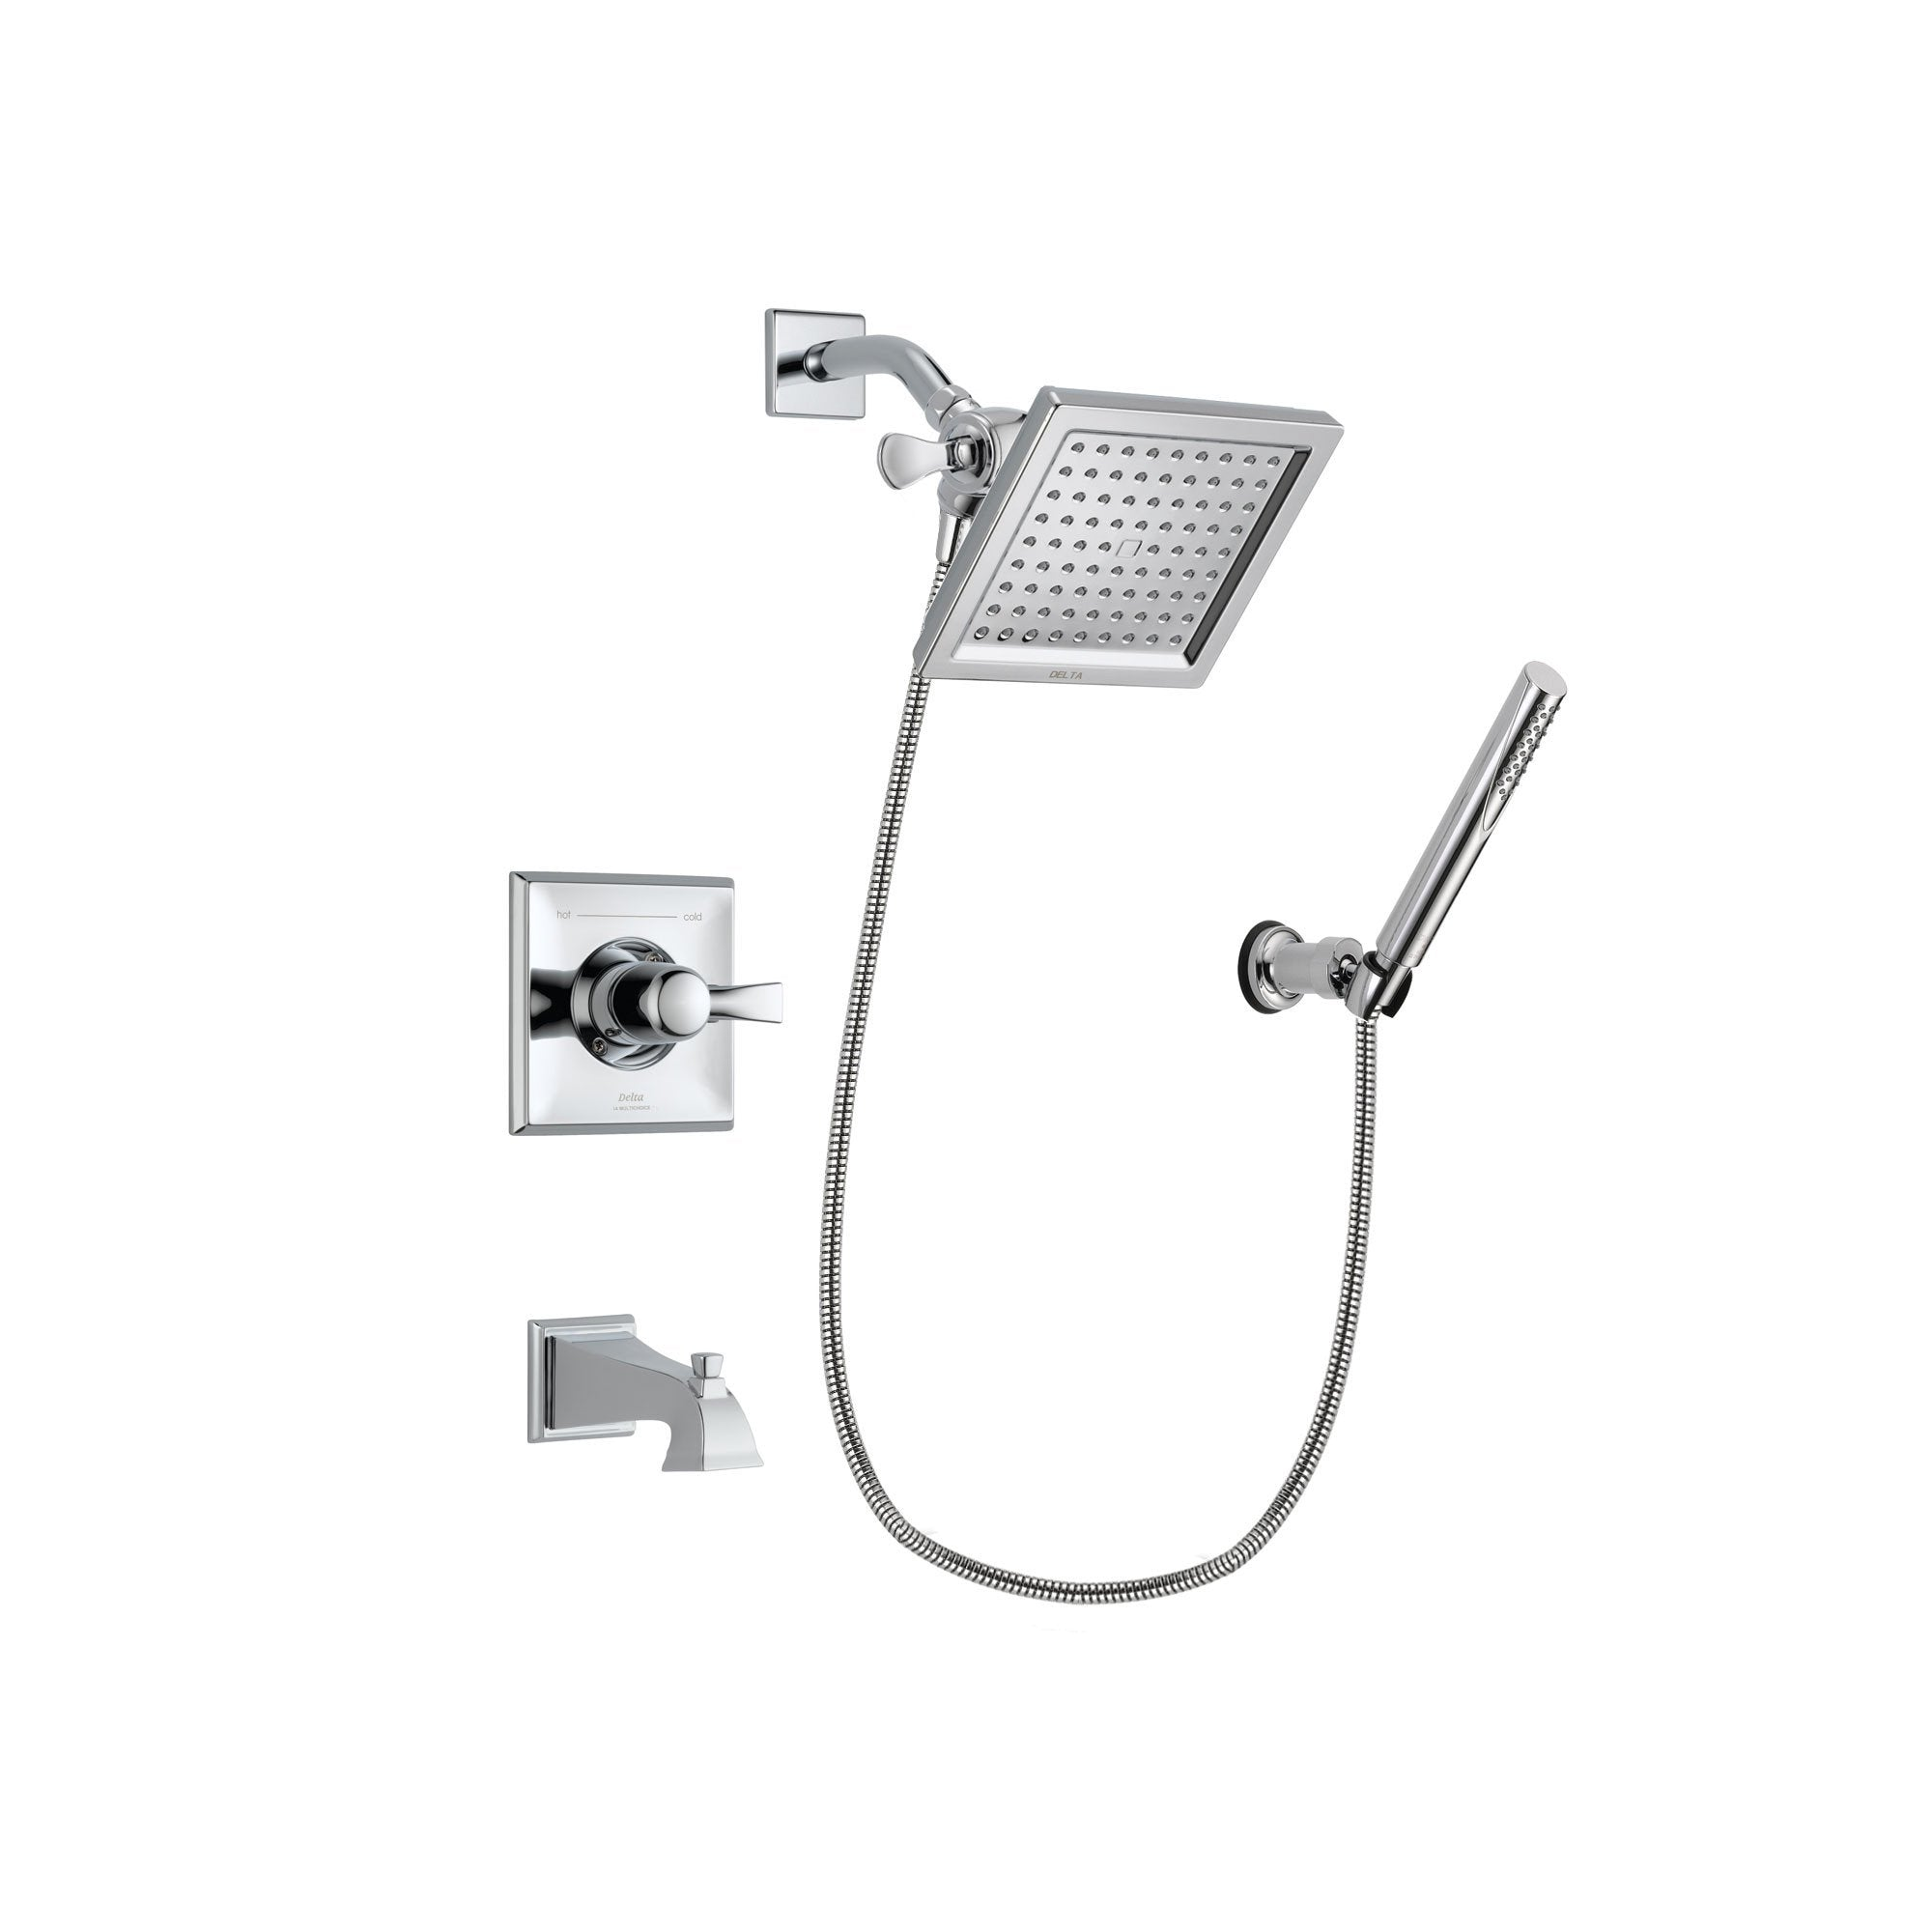 Delta Dryden Chrome Tub and Shower Faucet System Package w/ Hand Shower DSP0071V